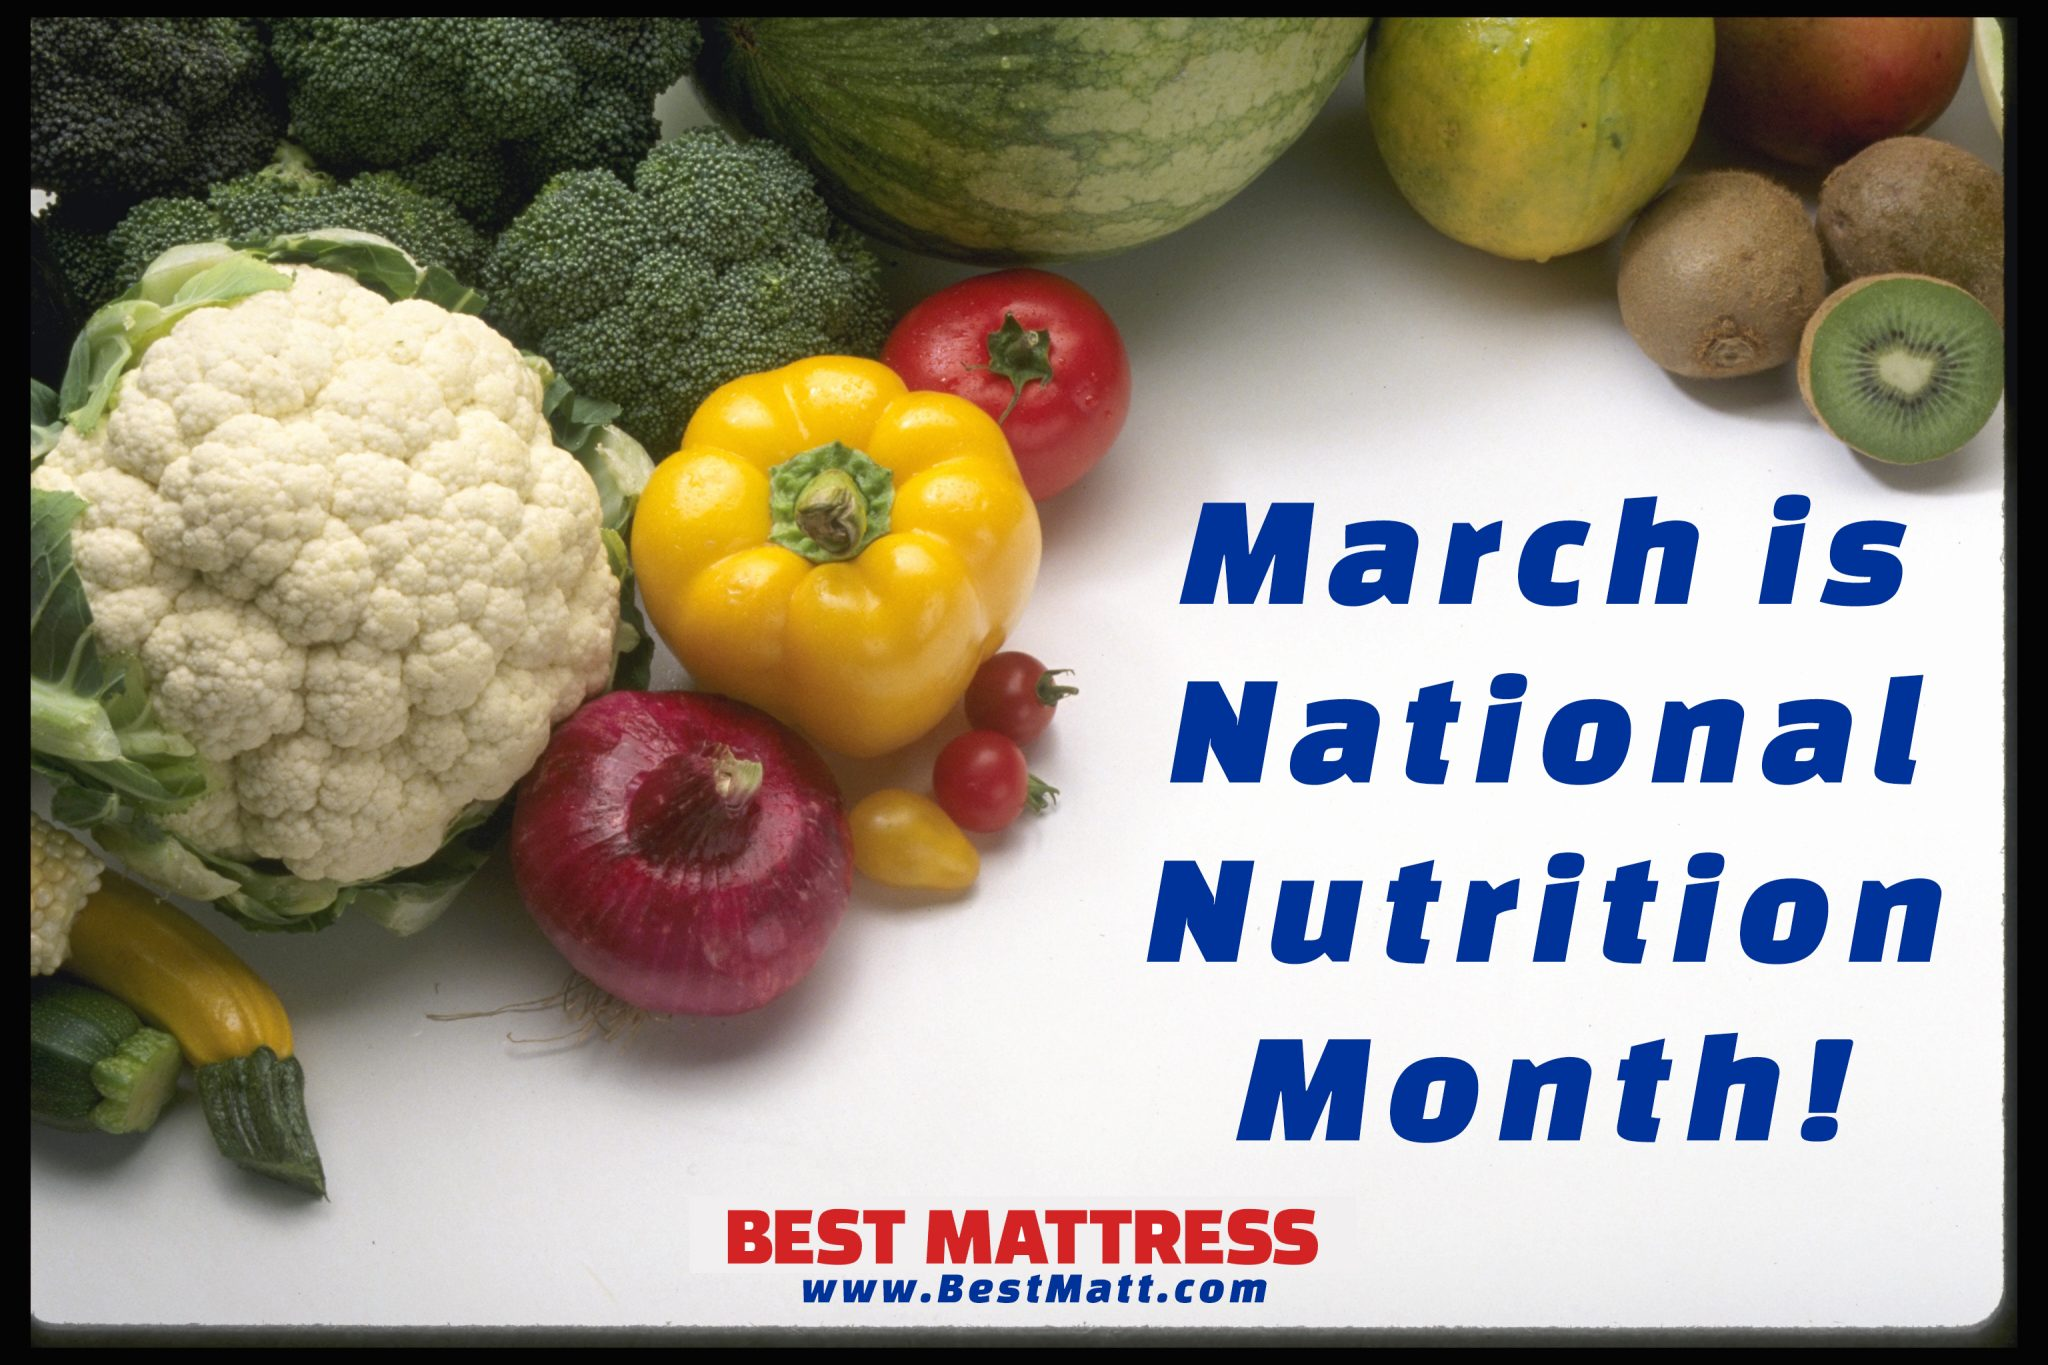 March is National Nutrition Month by Best Mattress